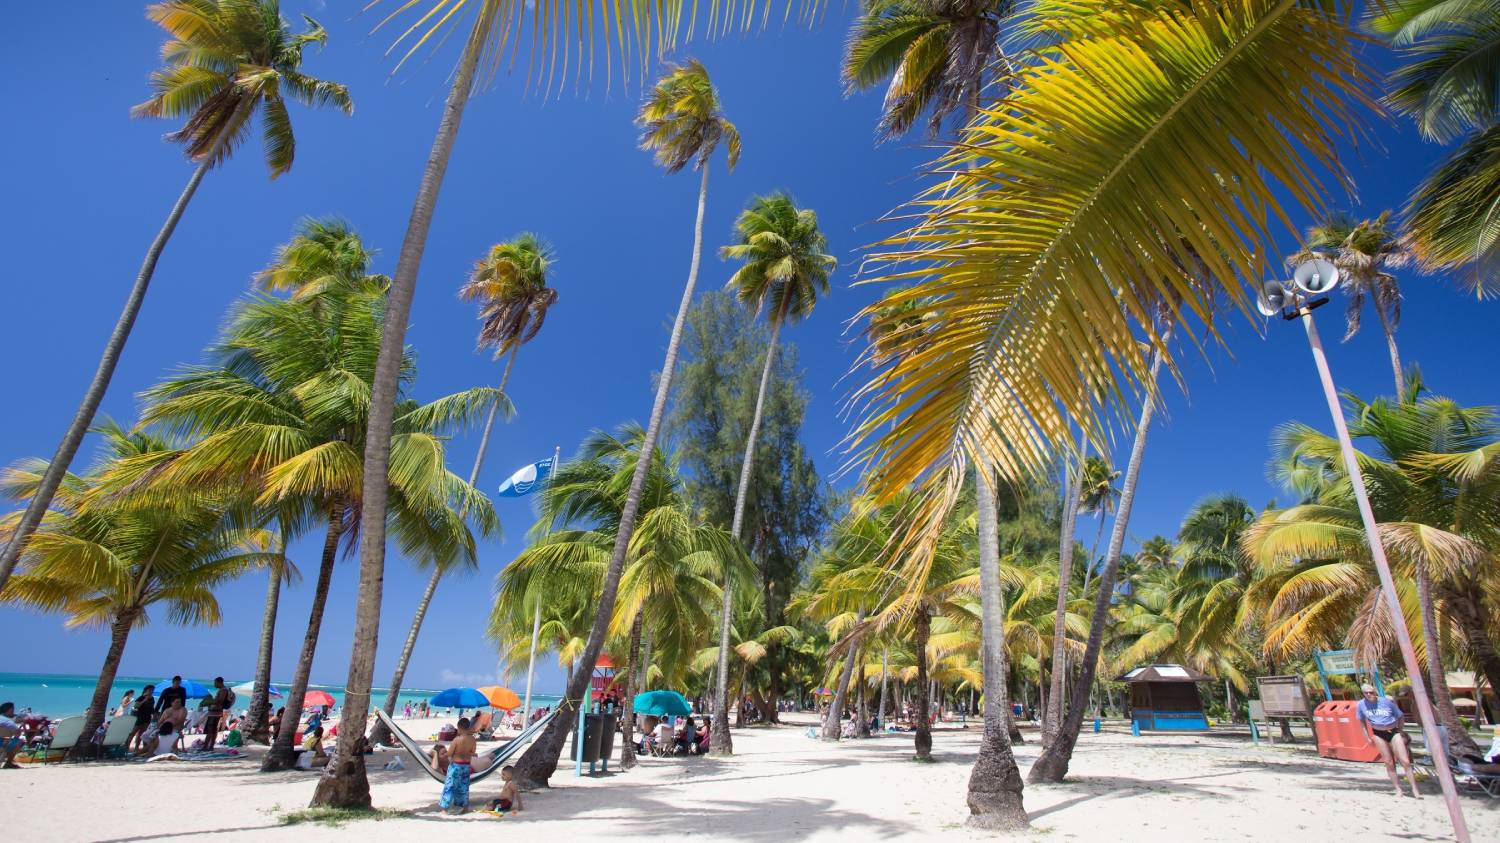 Luquillo - Things To Do In San Juan